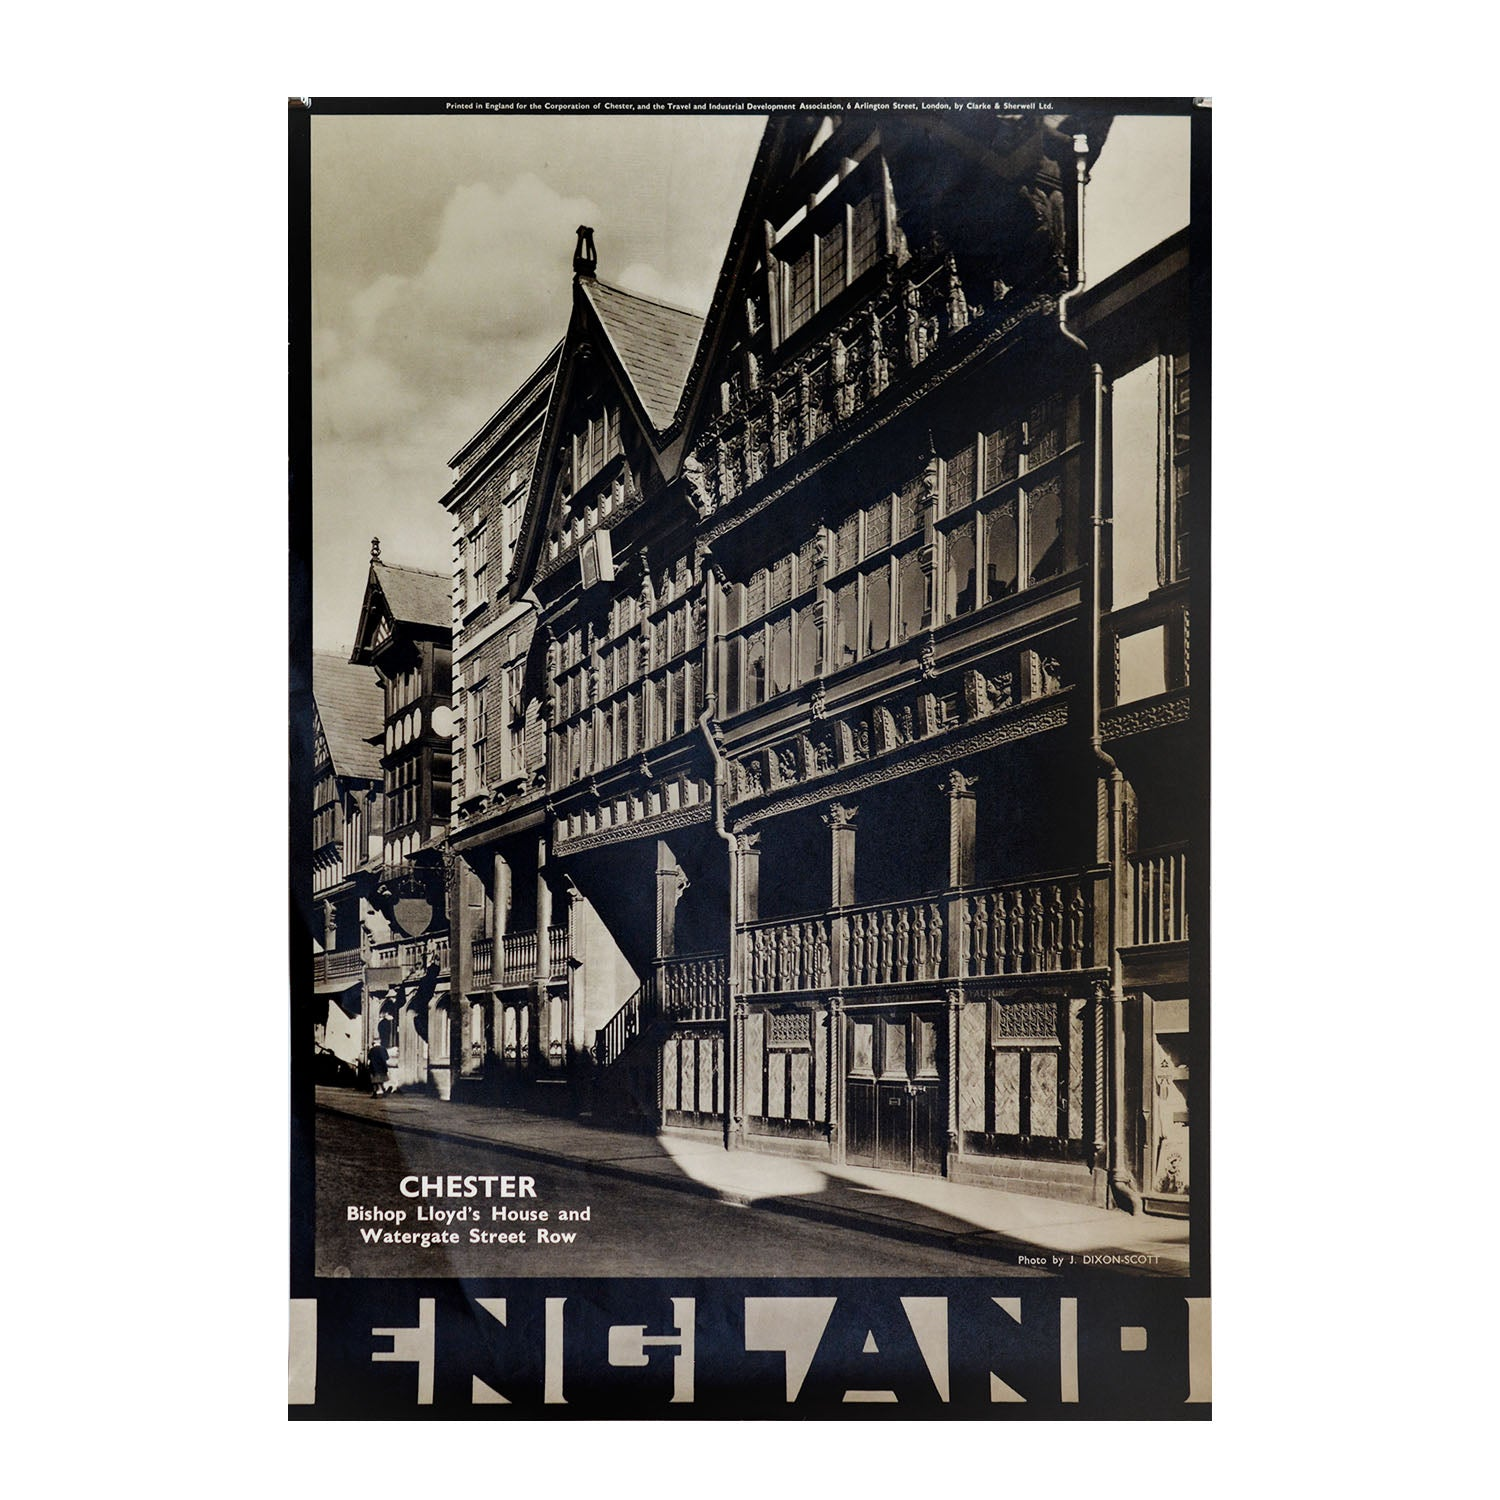 A superb photogravure poster published by the British Travel & Industrial Development Association, featuring Bishop Lloyd's House and Watergate Street House, Chester